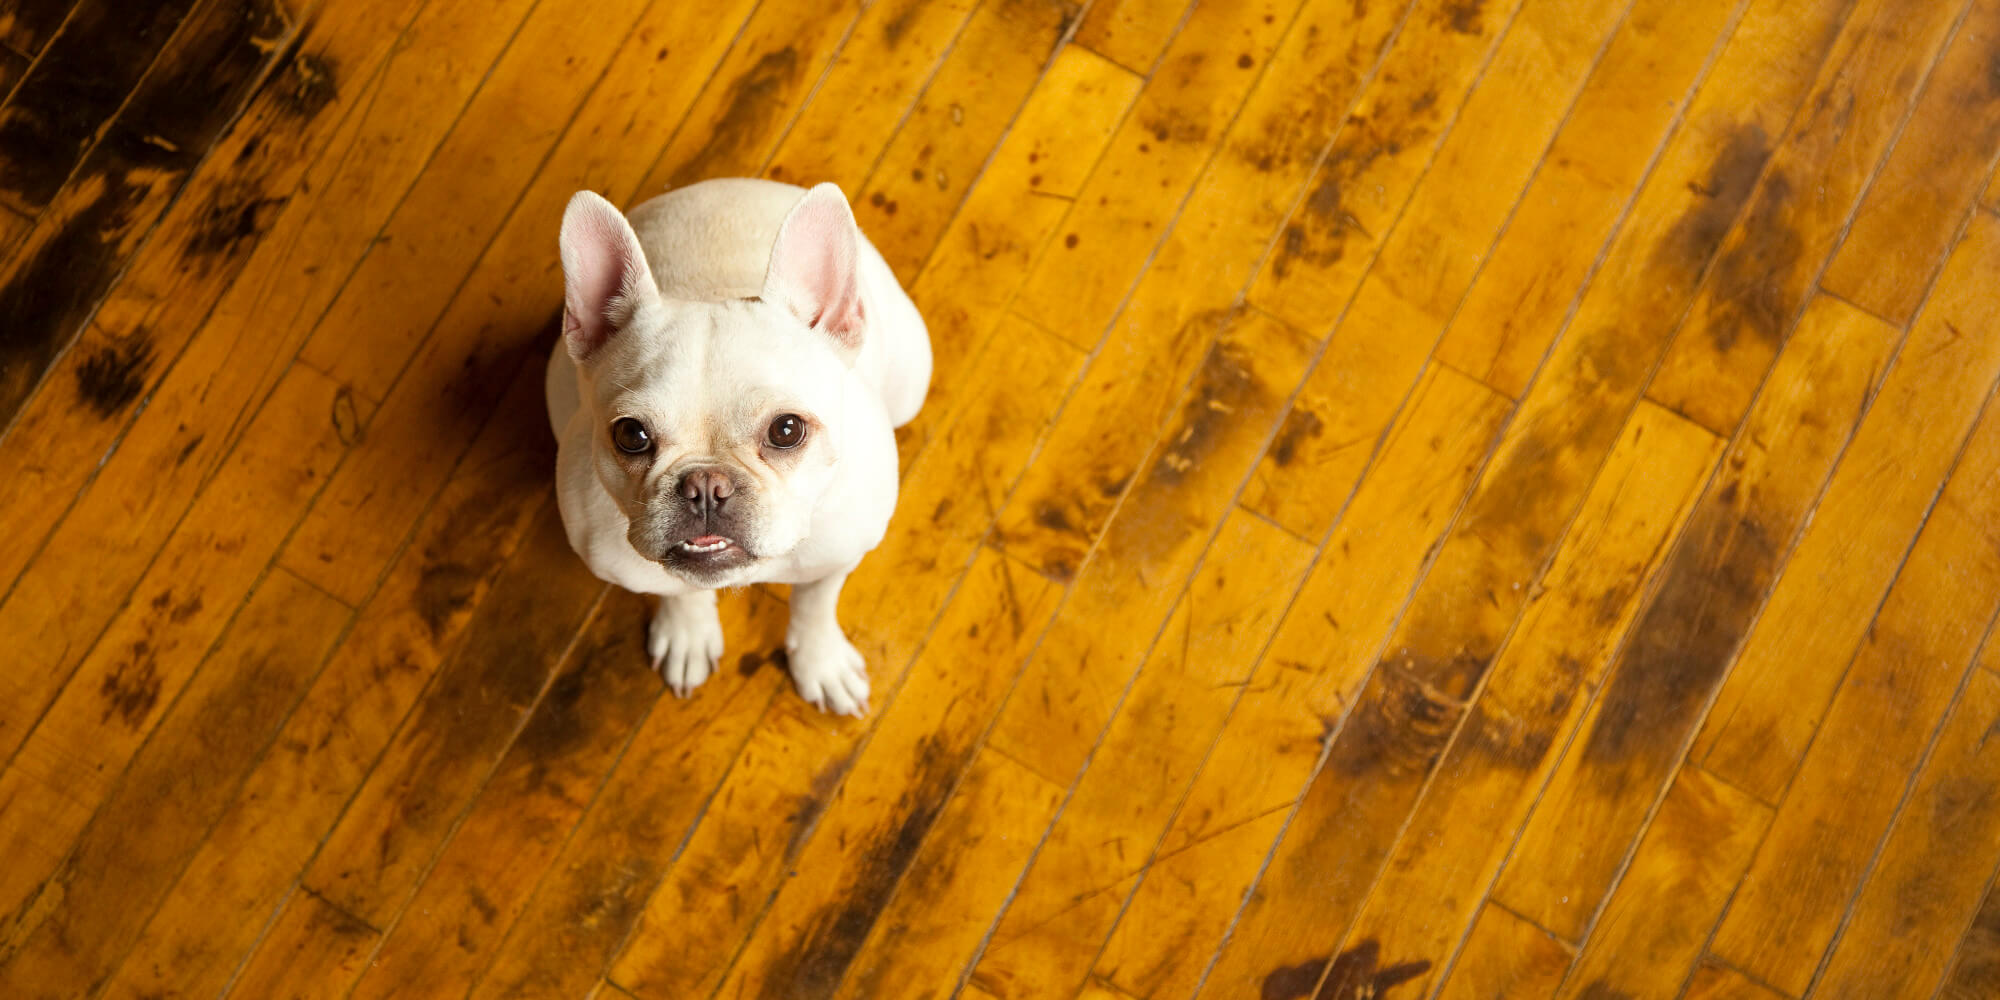 Even your beloved doggo can cause flooring issues.